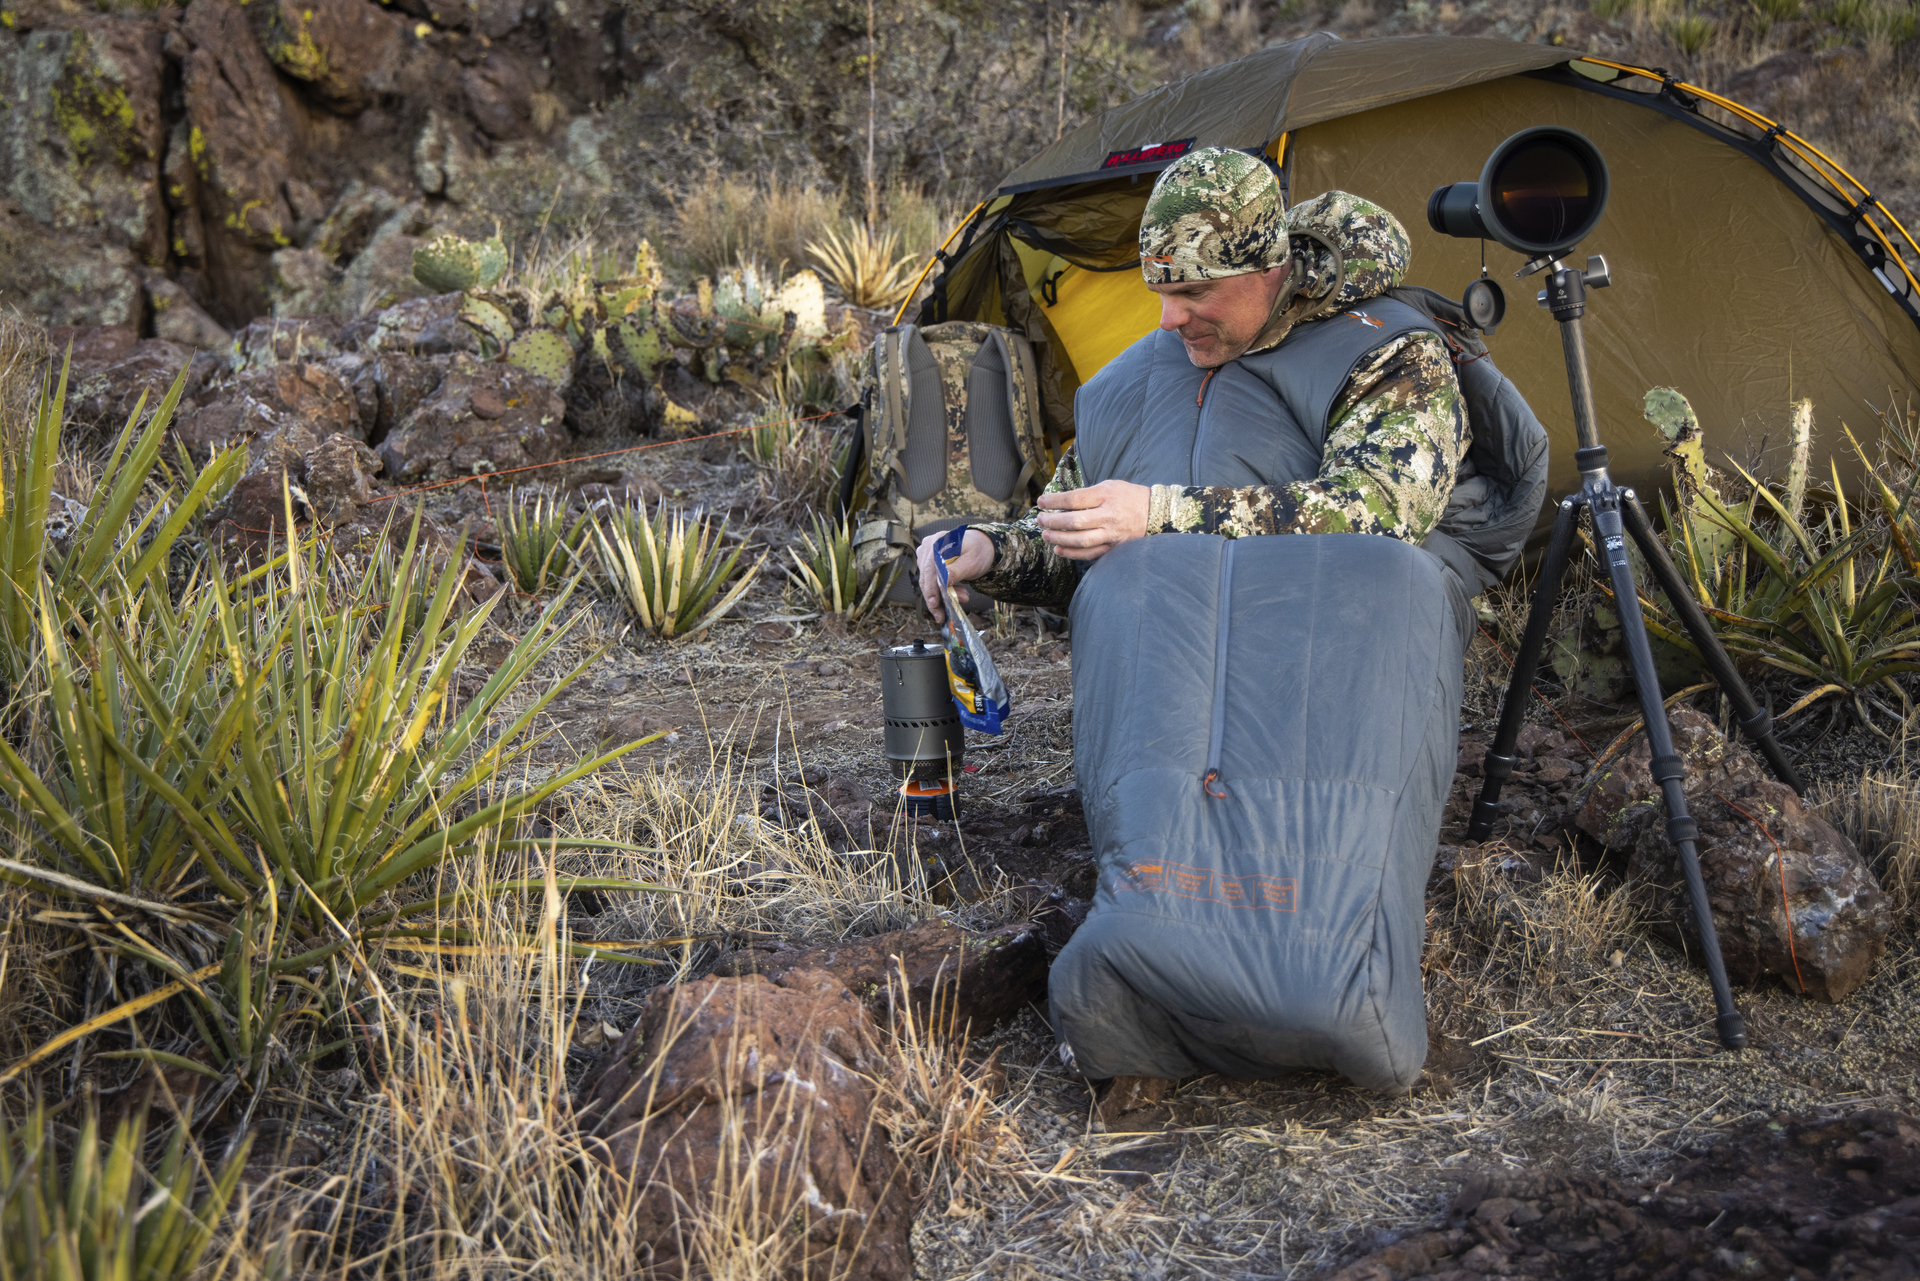 Camping in the Sitka Gear Aerolite Collection